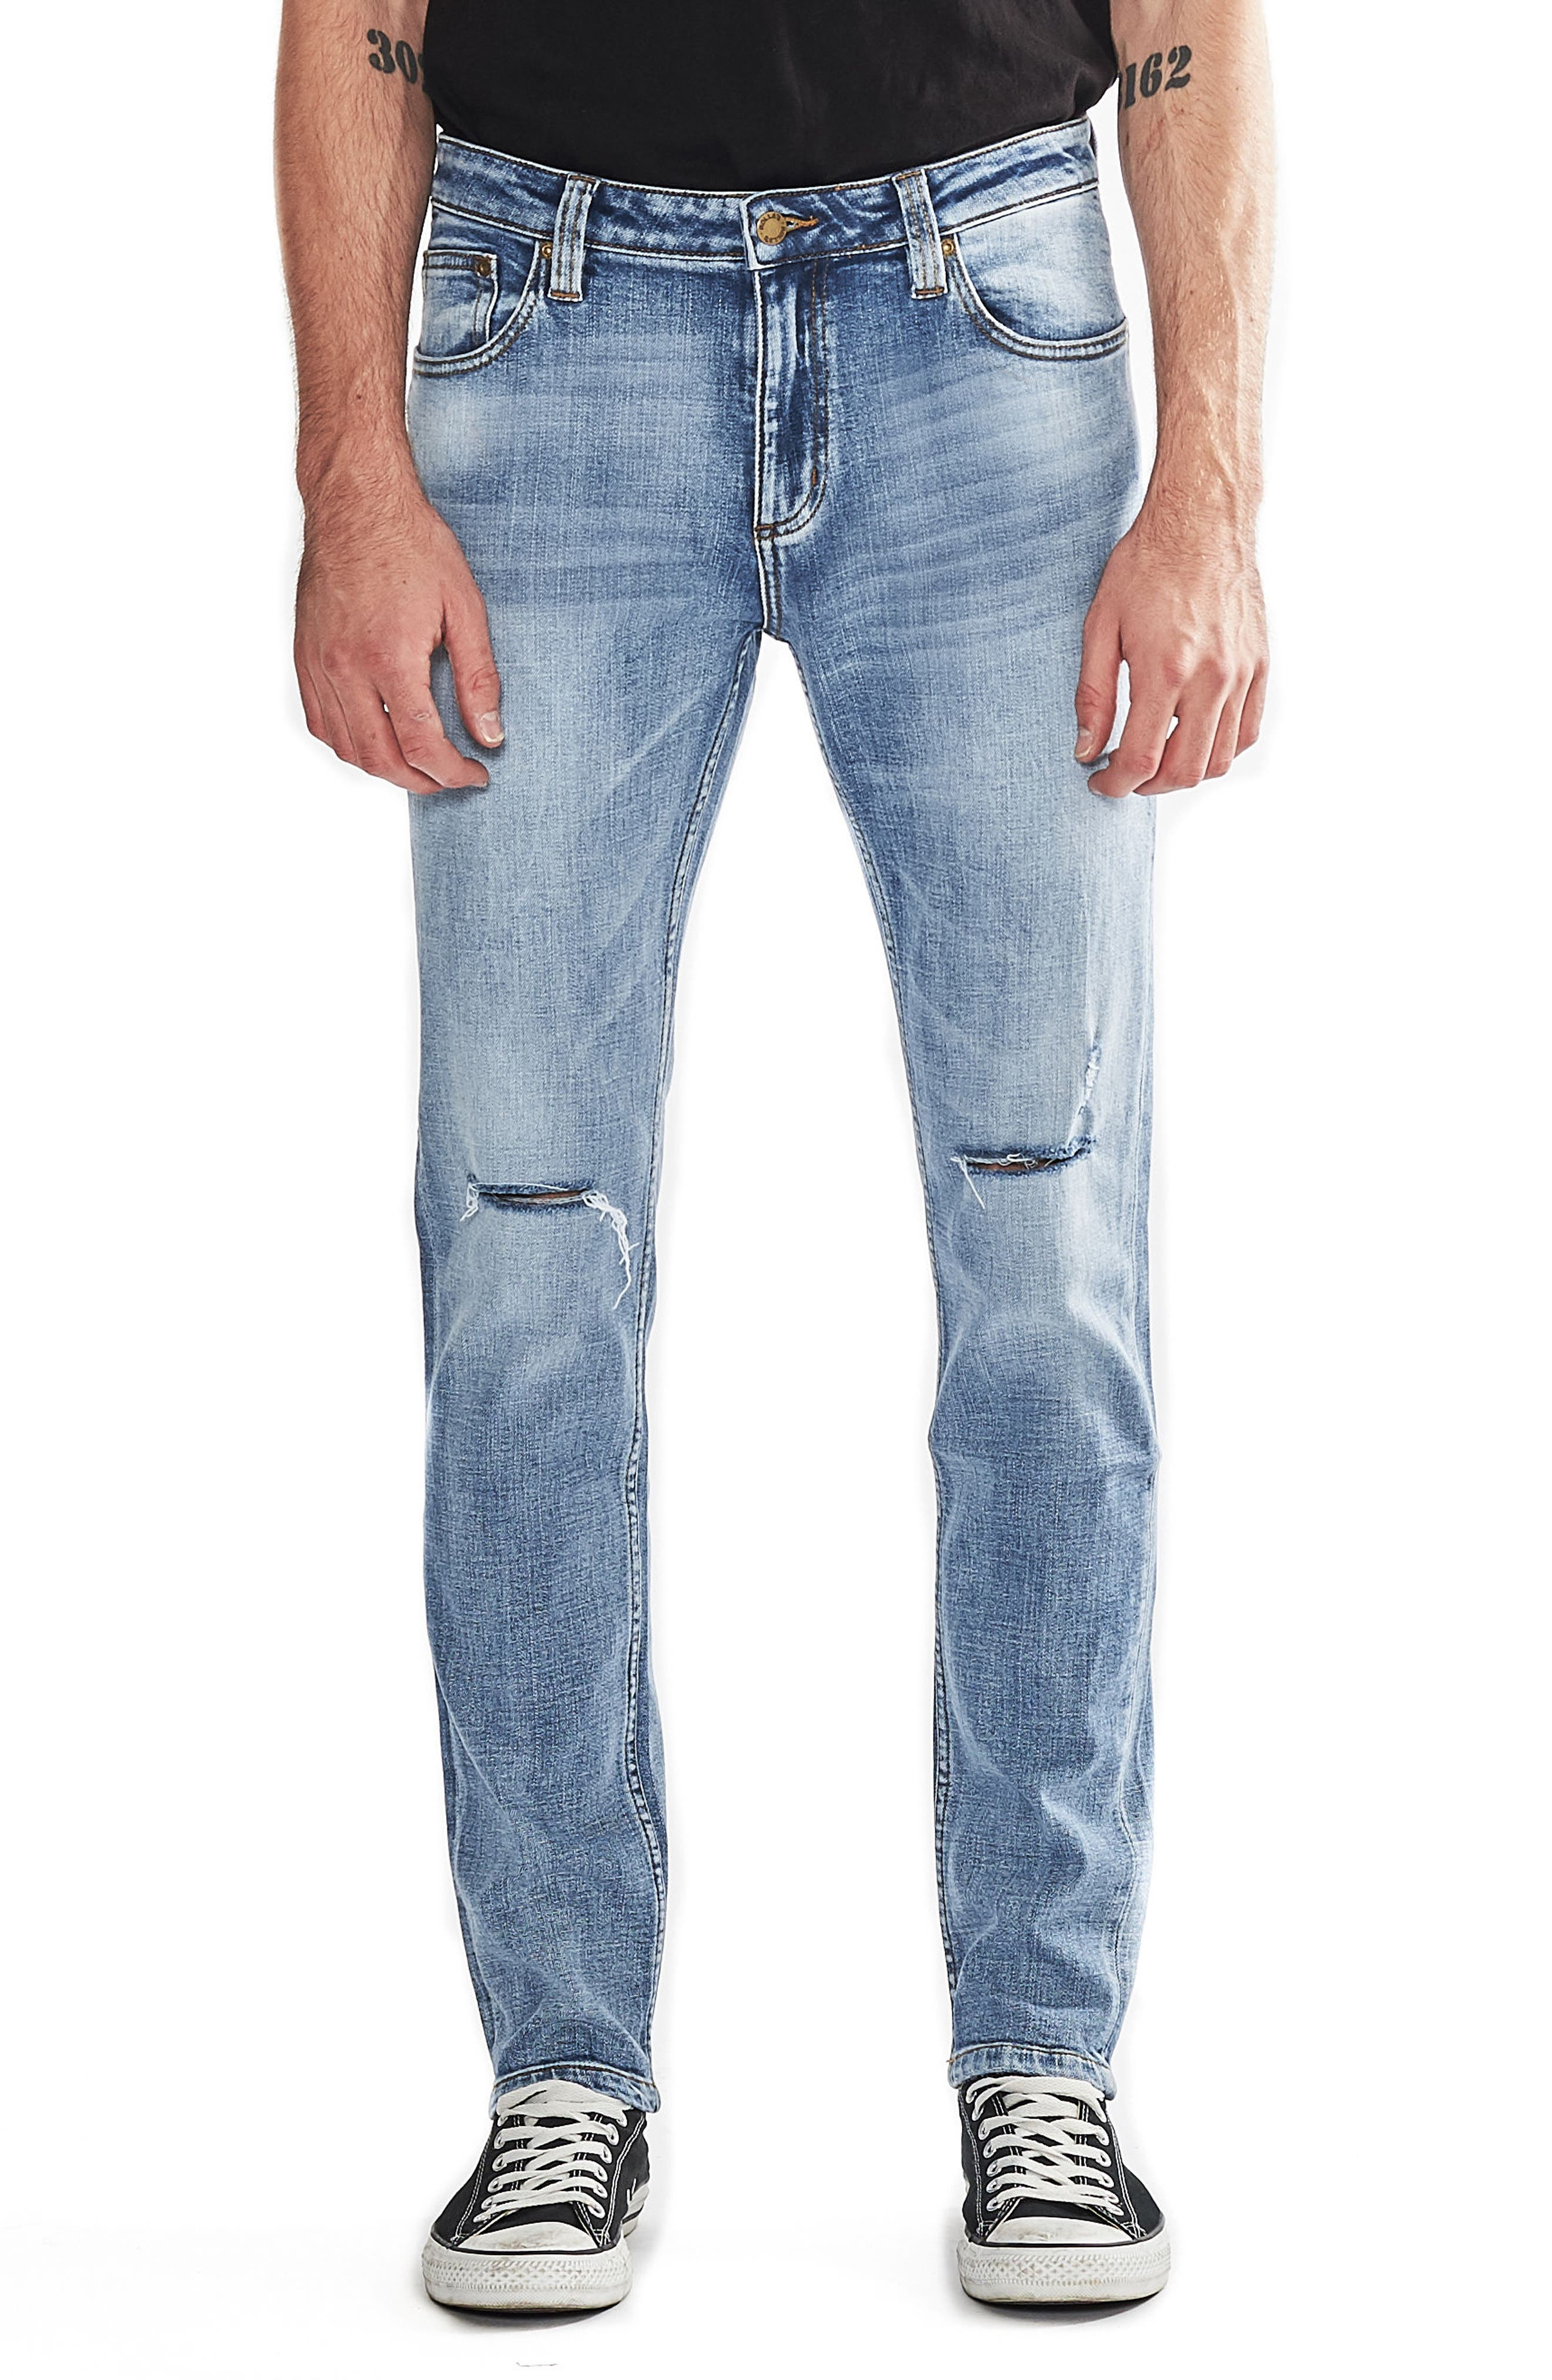 Tim Slims Slim Fit Jeans,                         Main,                         color, 405